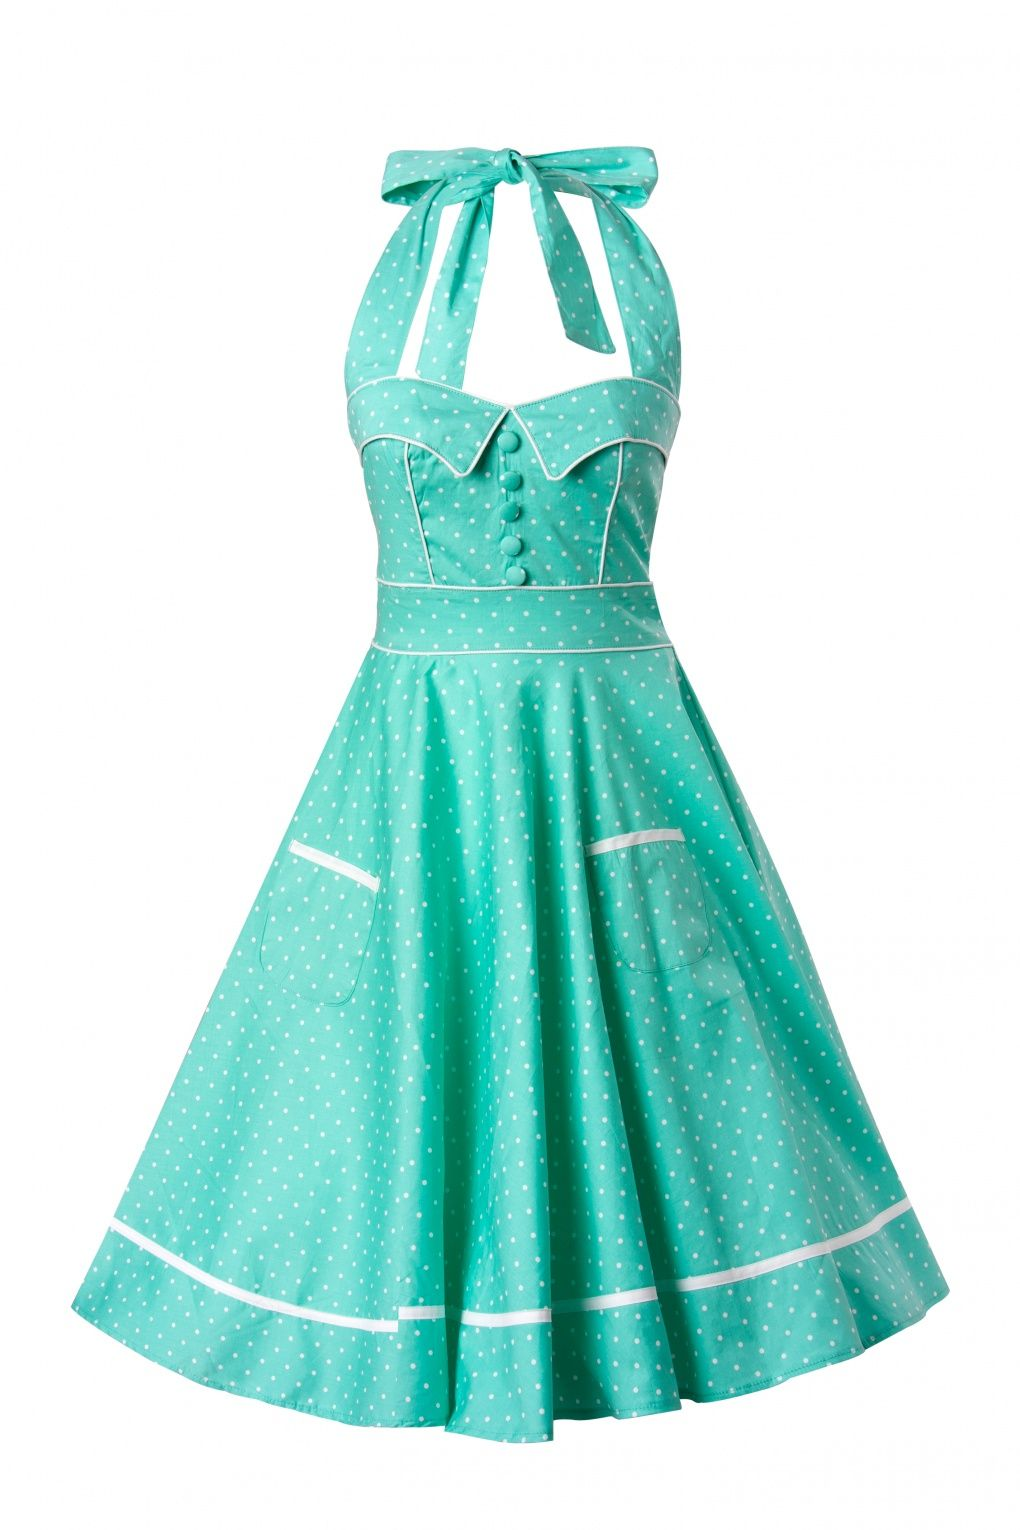 50s Retro halter Olivie Swing Dress in Mint Green and White dots ...